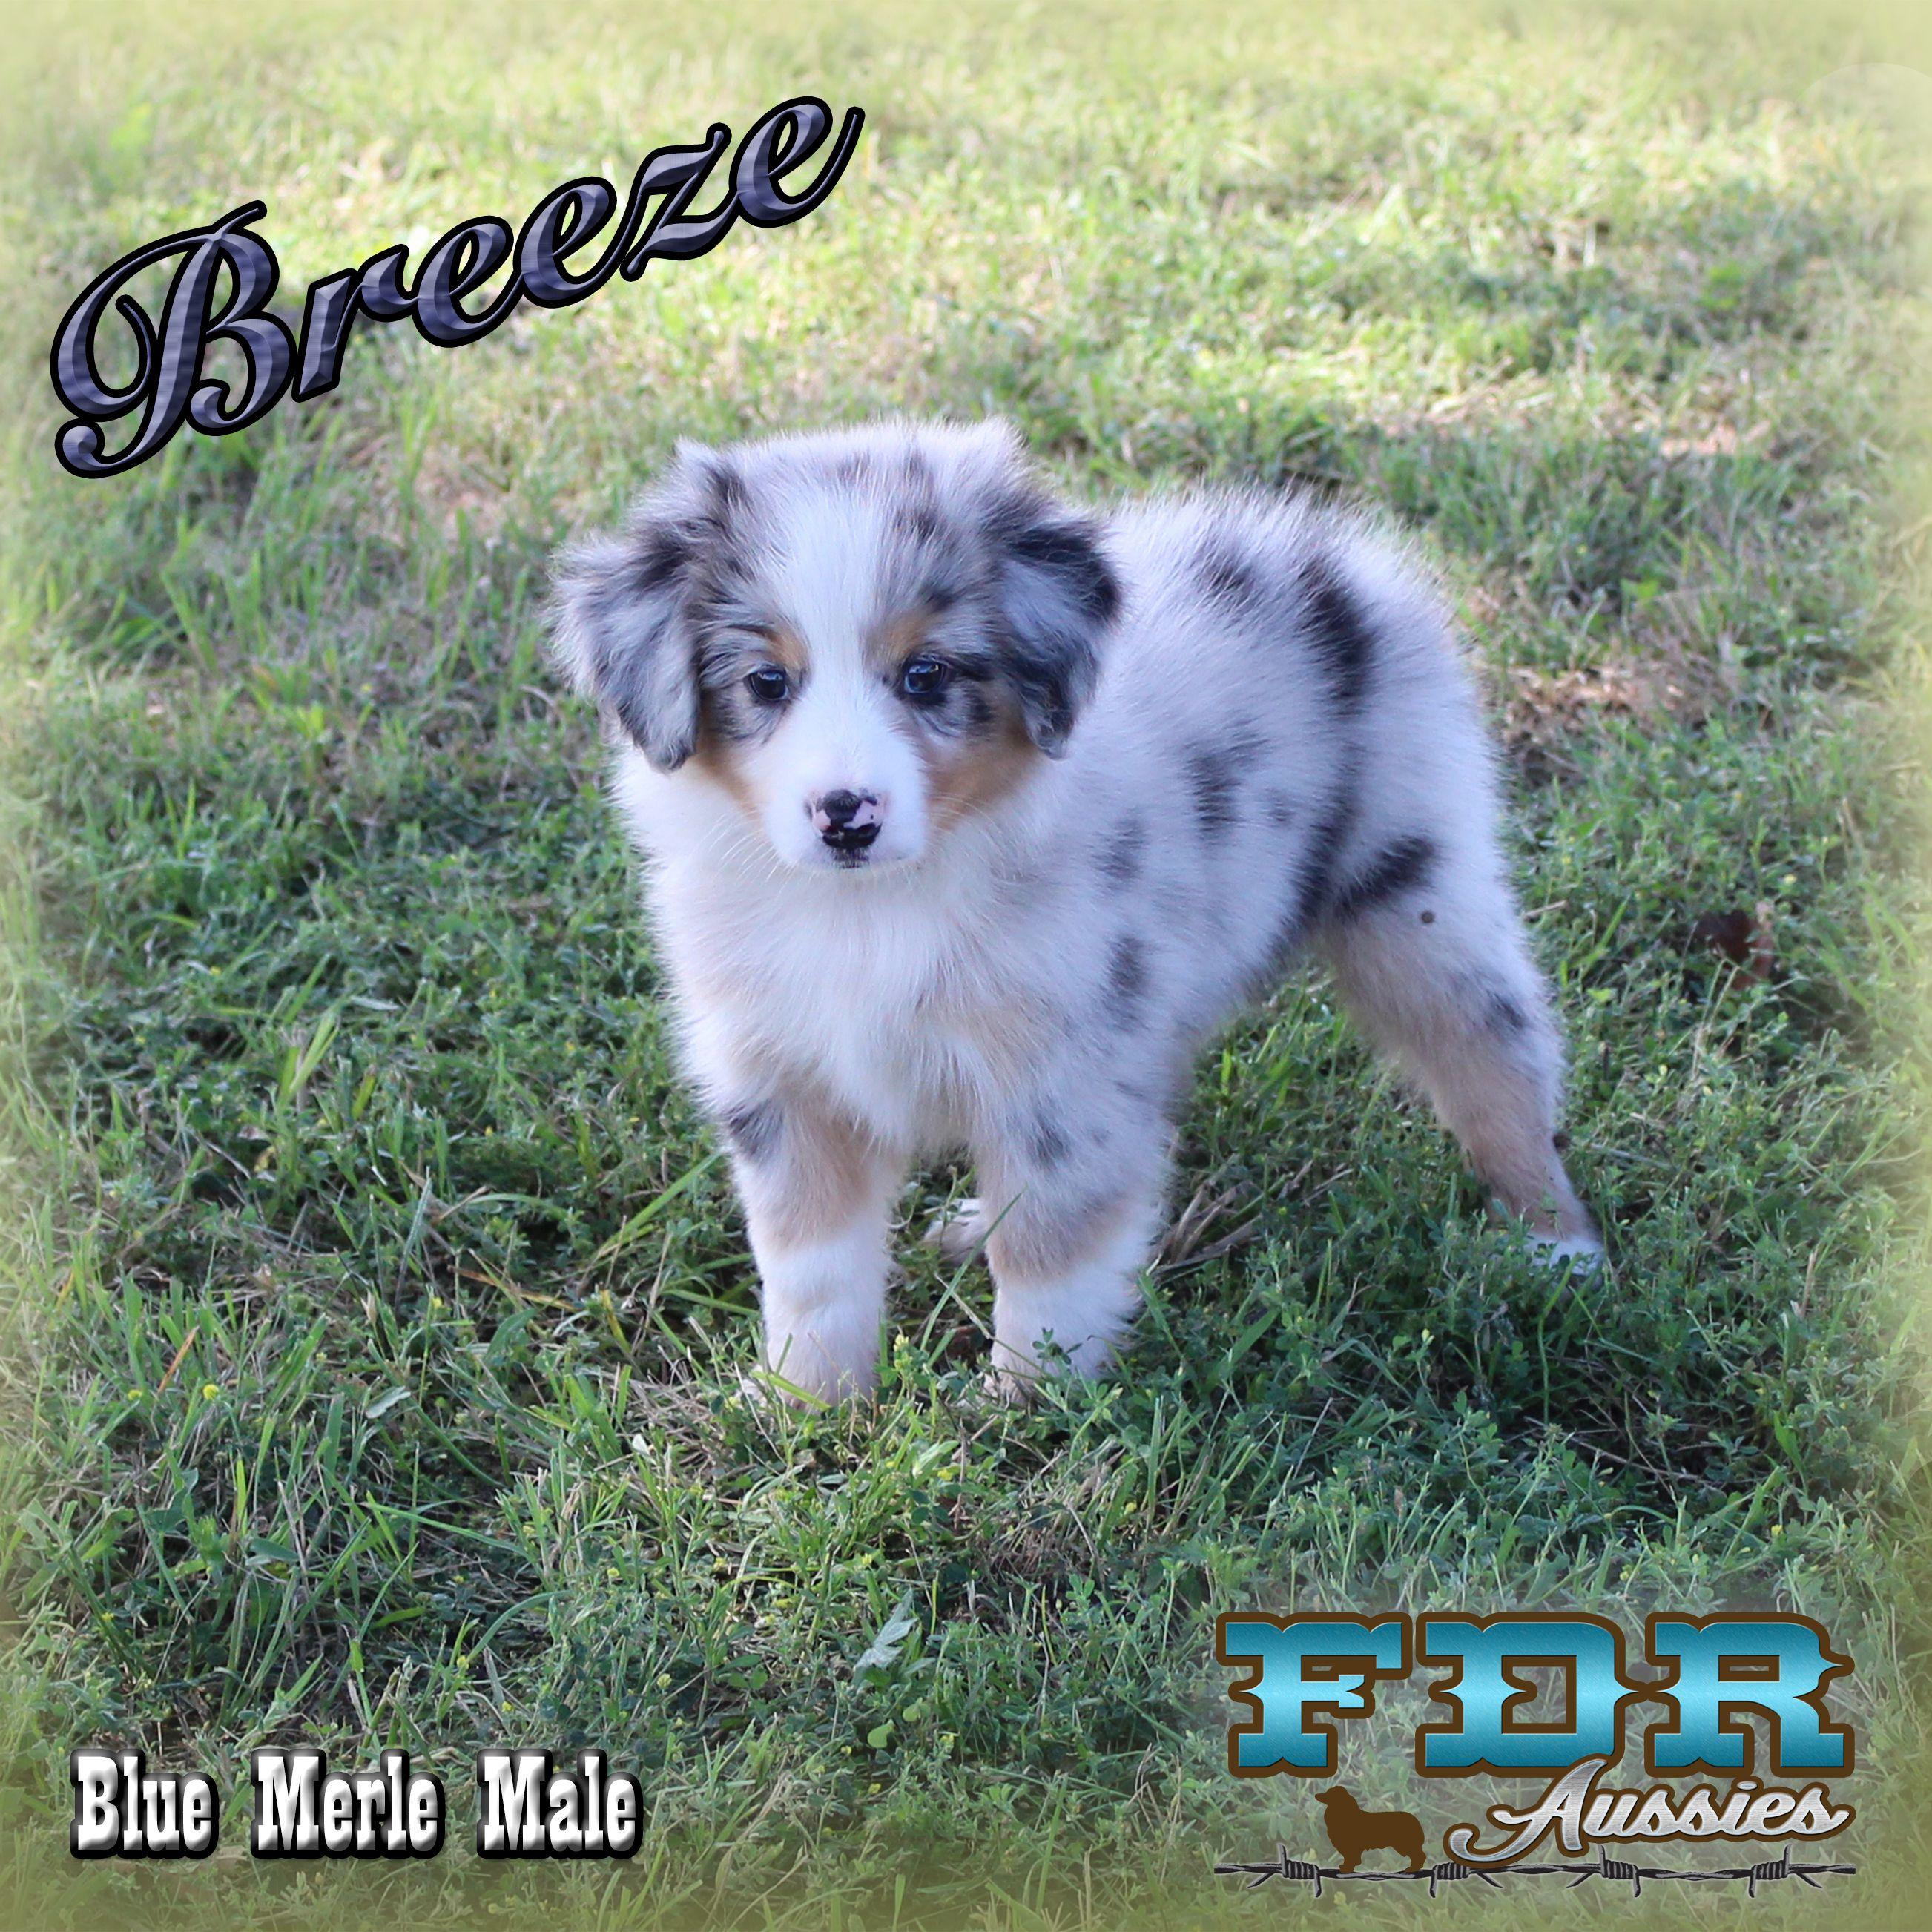 Breeze Mini Blue Merle Male Aussie Blue Merle Australian Shepherd Puppies Miniature Australian Shepherd Puppies